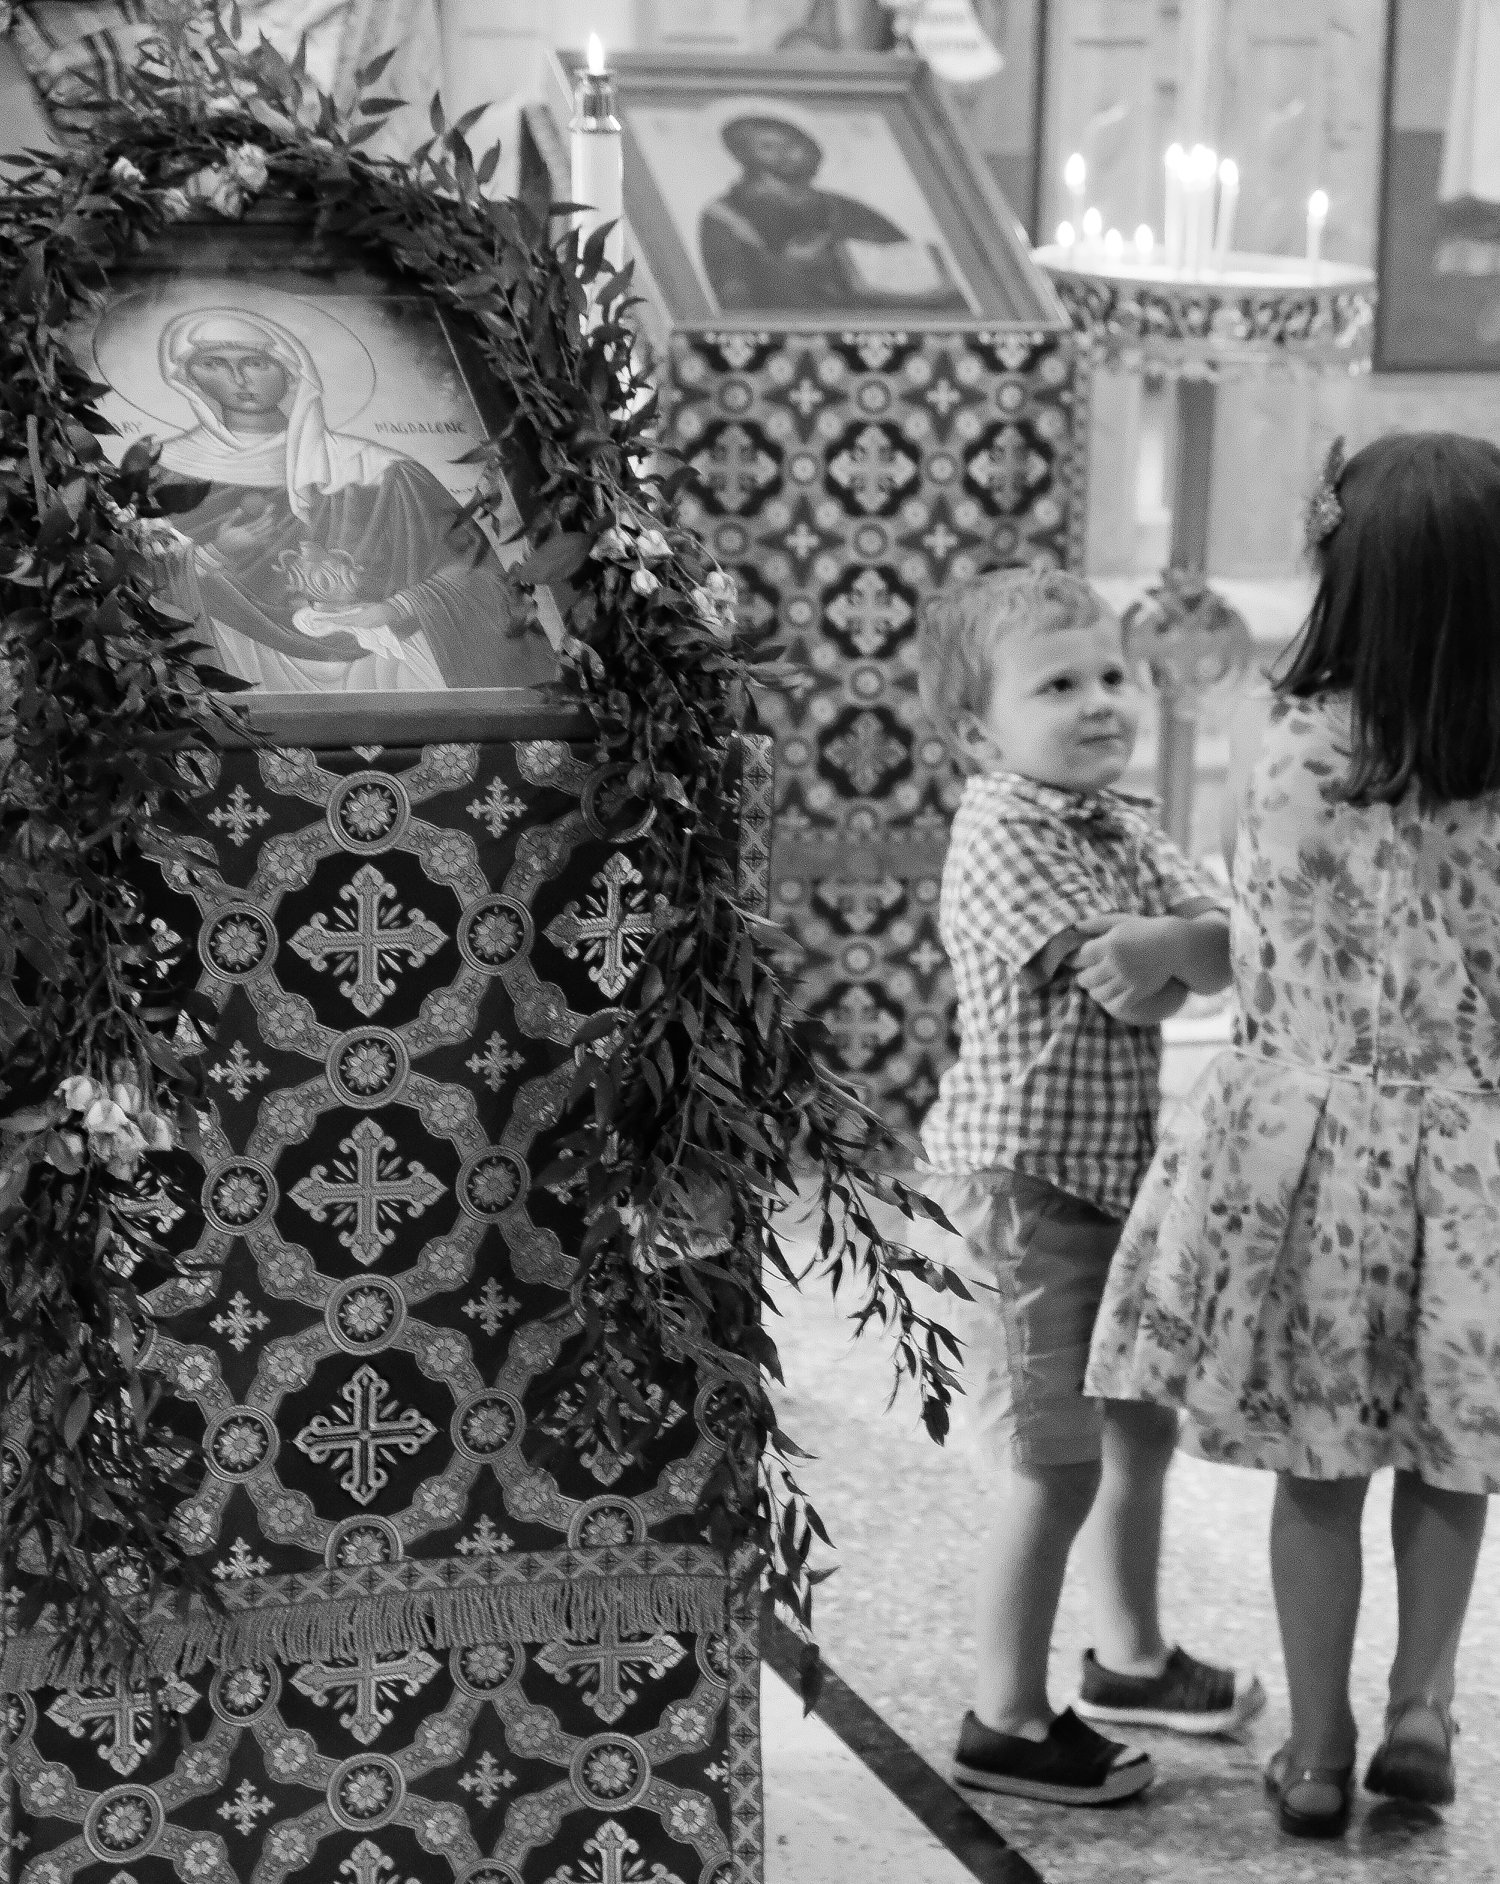 young boy and girl standing next to icon stands black and white